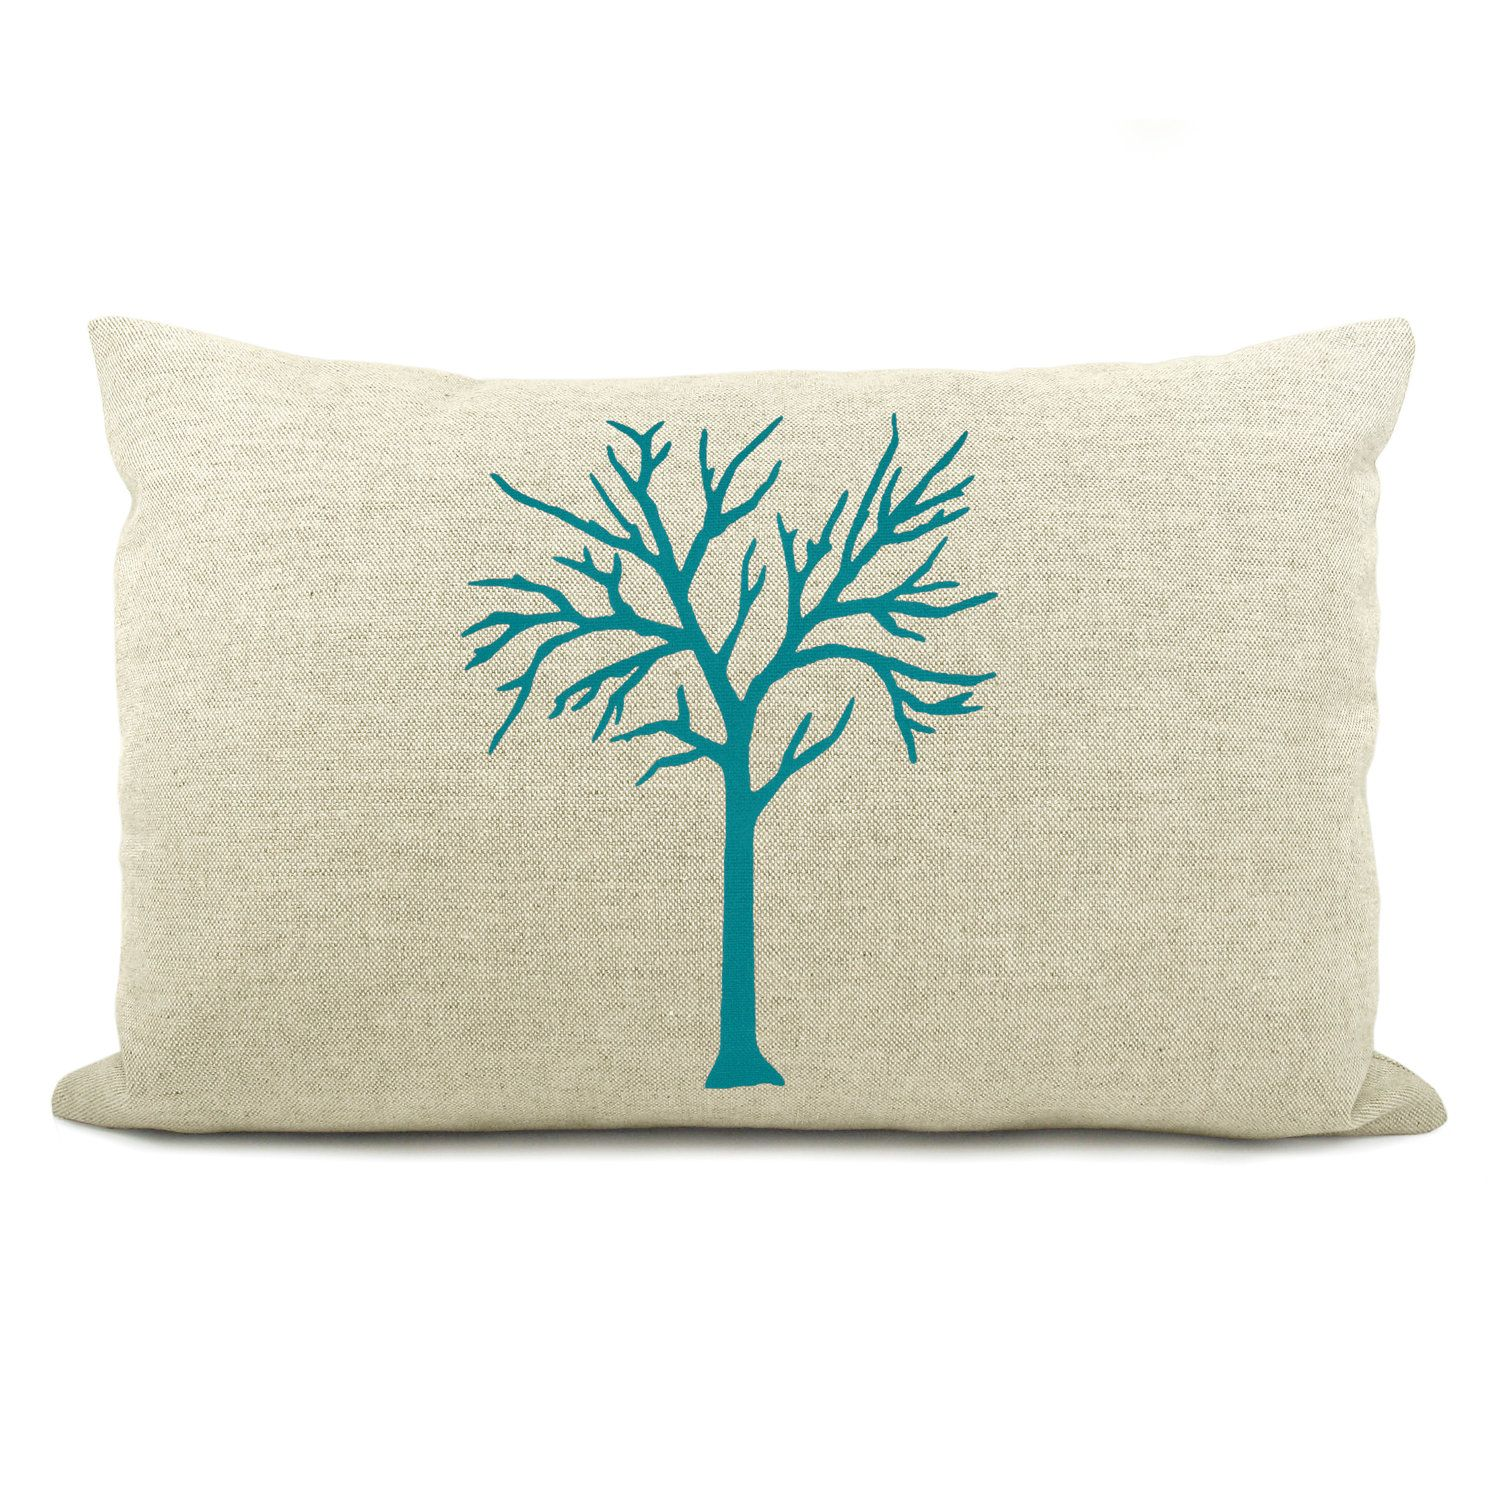 Personalized woodland inspired tree pillow case cushion cover